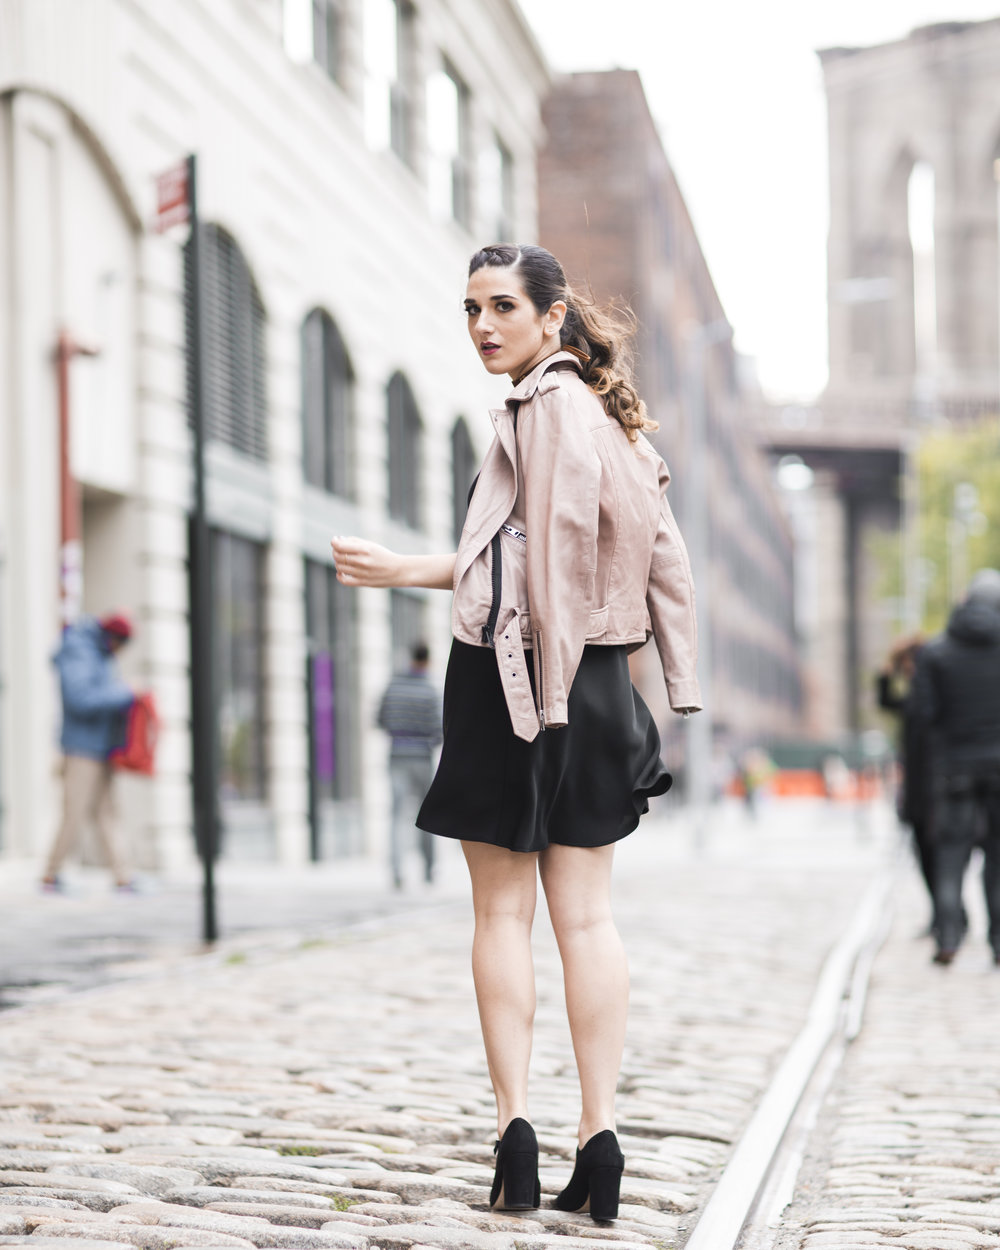 Pink Leather Jacket Erin Dana Choker Louboutins & Love Fashion Blog Esther Santer NYC Street Style Blogger Outfit OOTD Trendy All Saints Hair Inspo Fall Look Via Spiga Black Shoes Bloomingdales Slip Dress Girl Women Accessories Model Dumbo Pretty Shop.jpg